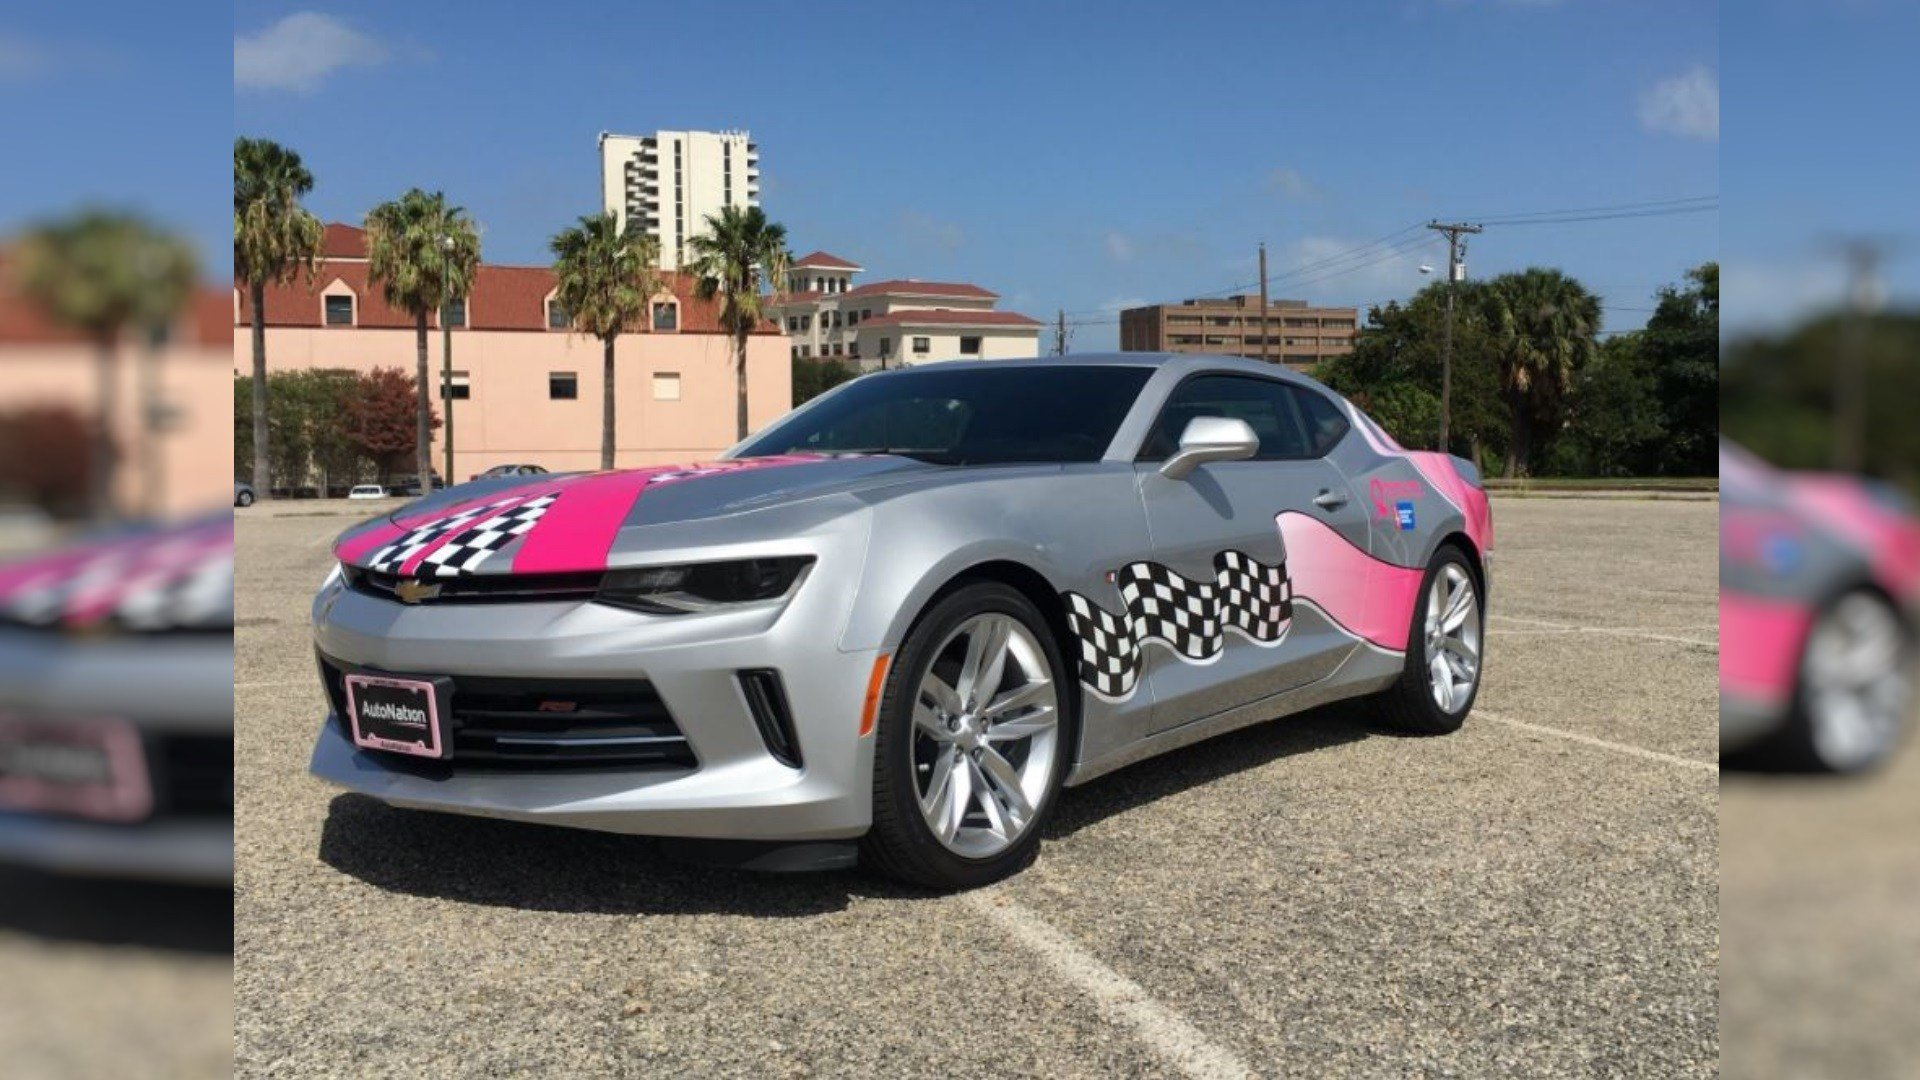 2017 'Making Strides' Chevy Camaro will be raffled off at Saturday's 'Making Strides Against Breast Cancer' walk/